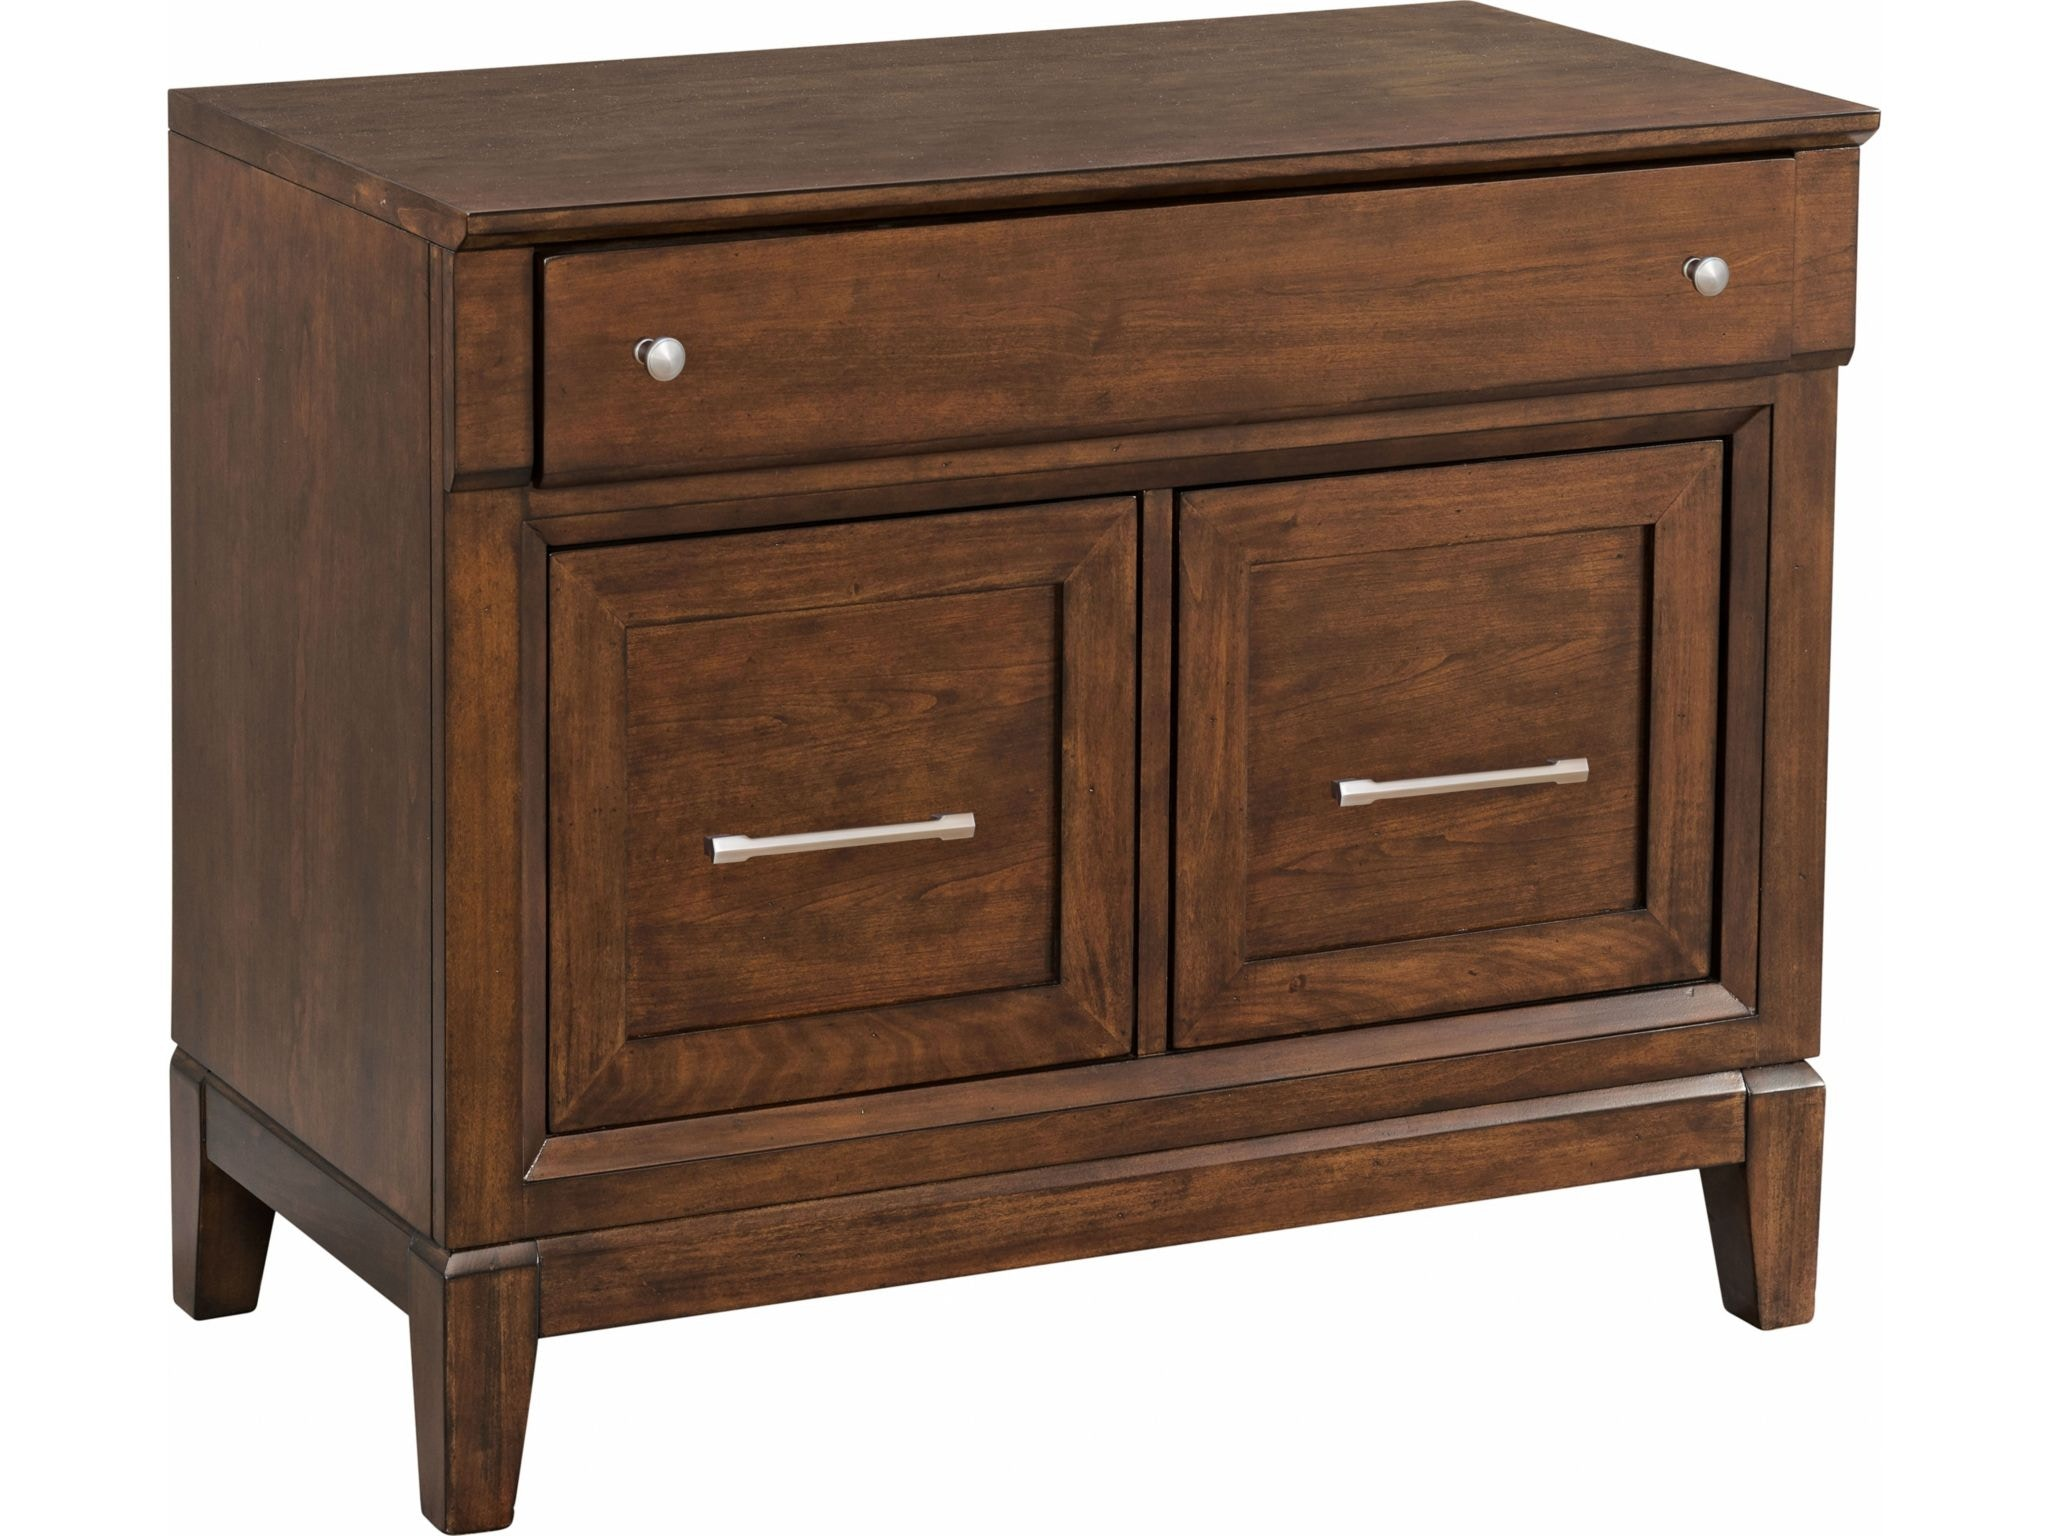 Thomasville Home Office File Storage Cabinet 85231 639   McCreerys Home  Furnishings   Sacramento, Rancho Cordova And Roseville CA